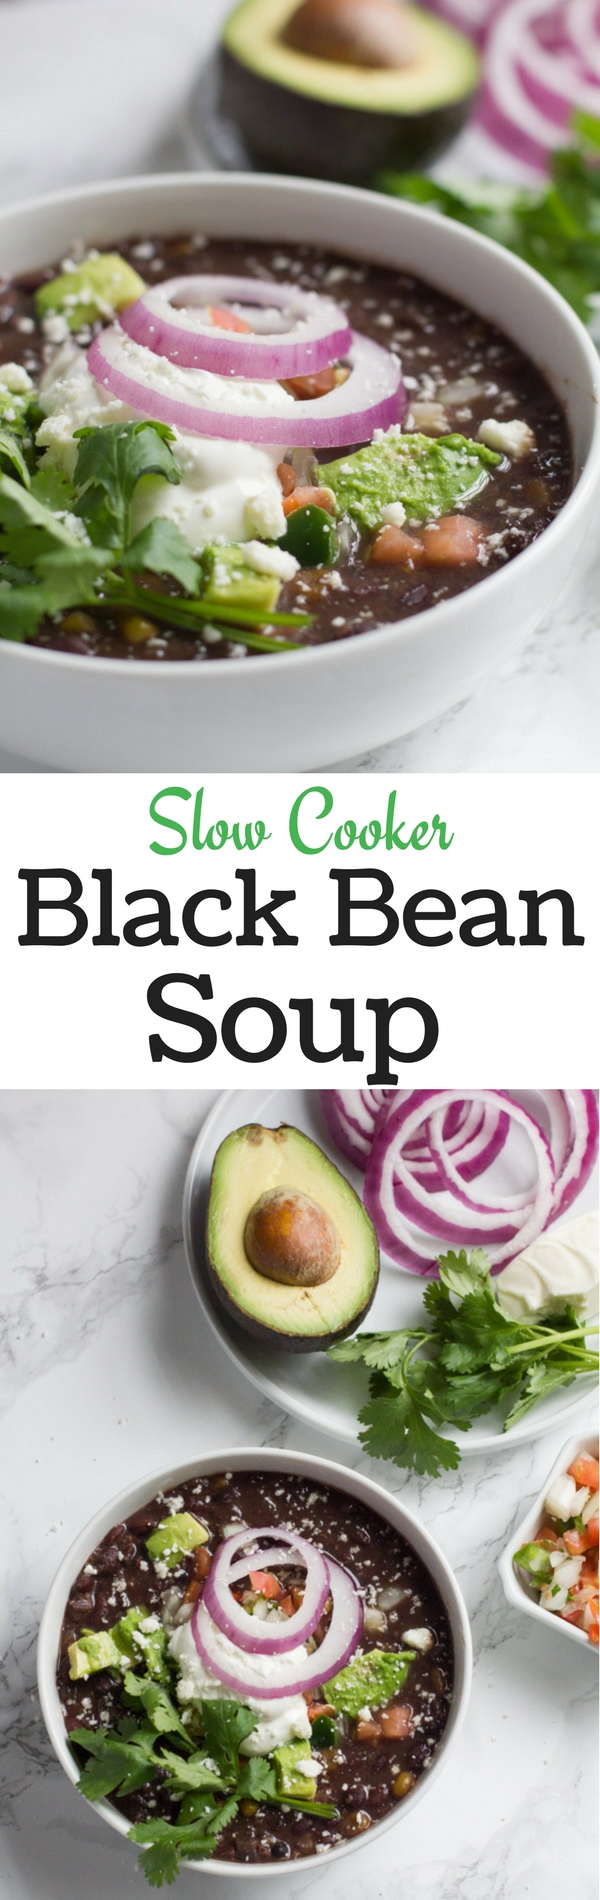 Black Beans | Soup | Slow Cooker | Crock Pot | Winter Soups | Easy Recipes | Mexican Soup